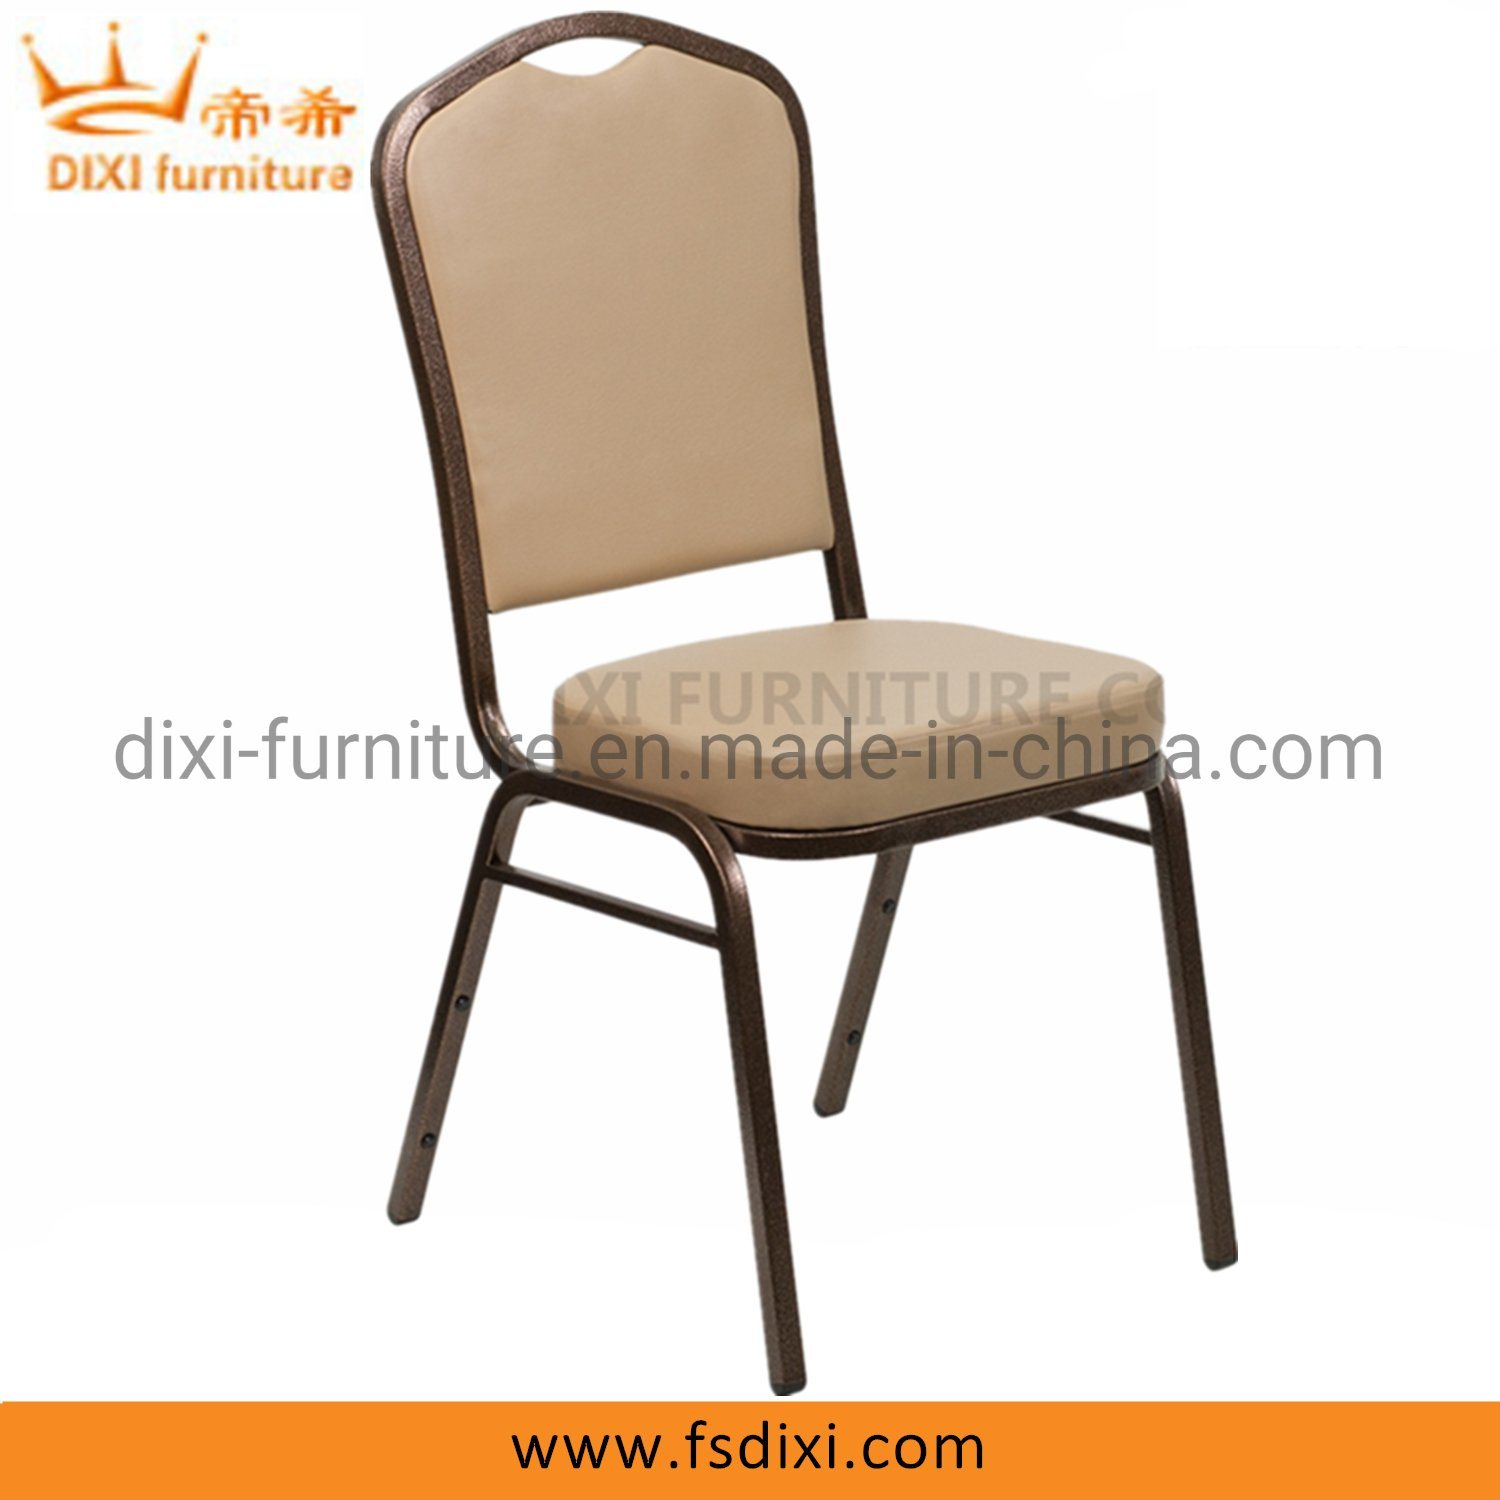 Hot Item Crown Back Stacking Banquet Chair In Tan Vinyl Copper Vein Frame